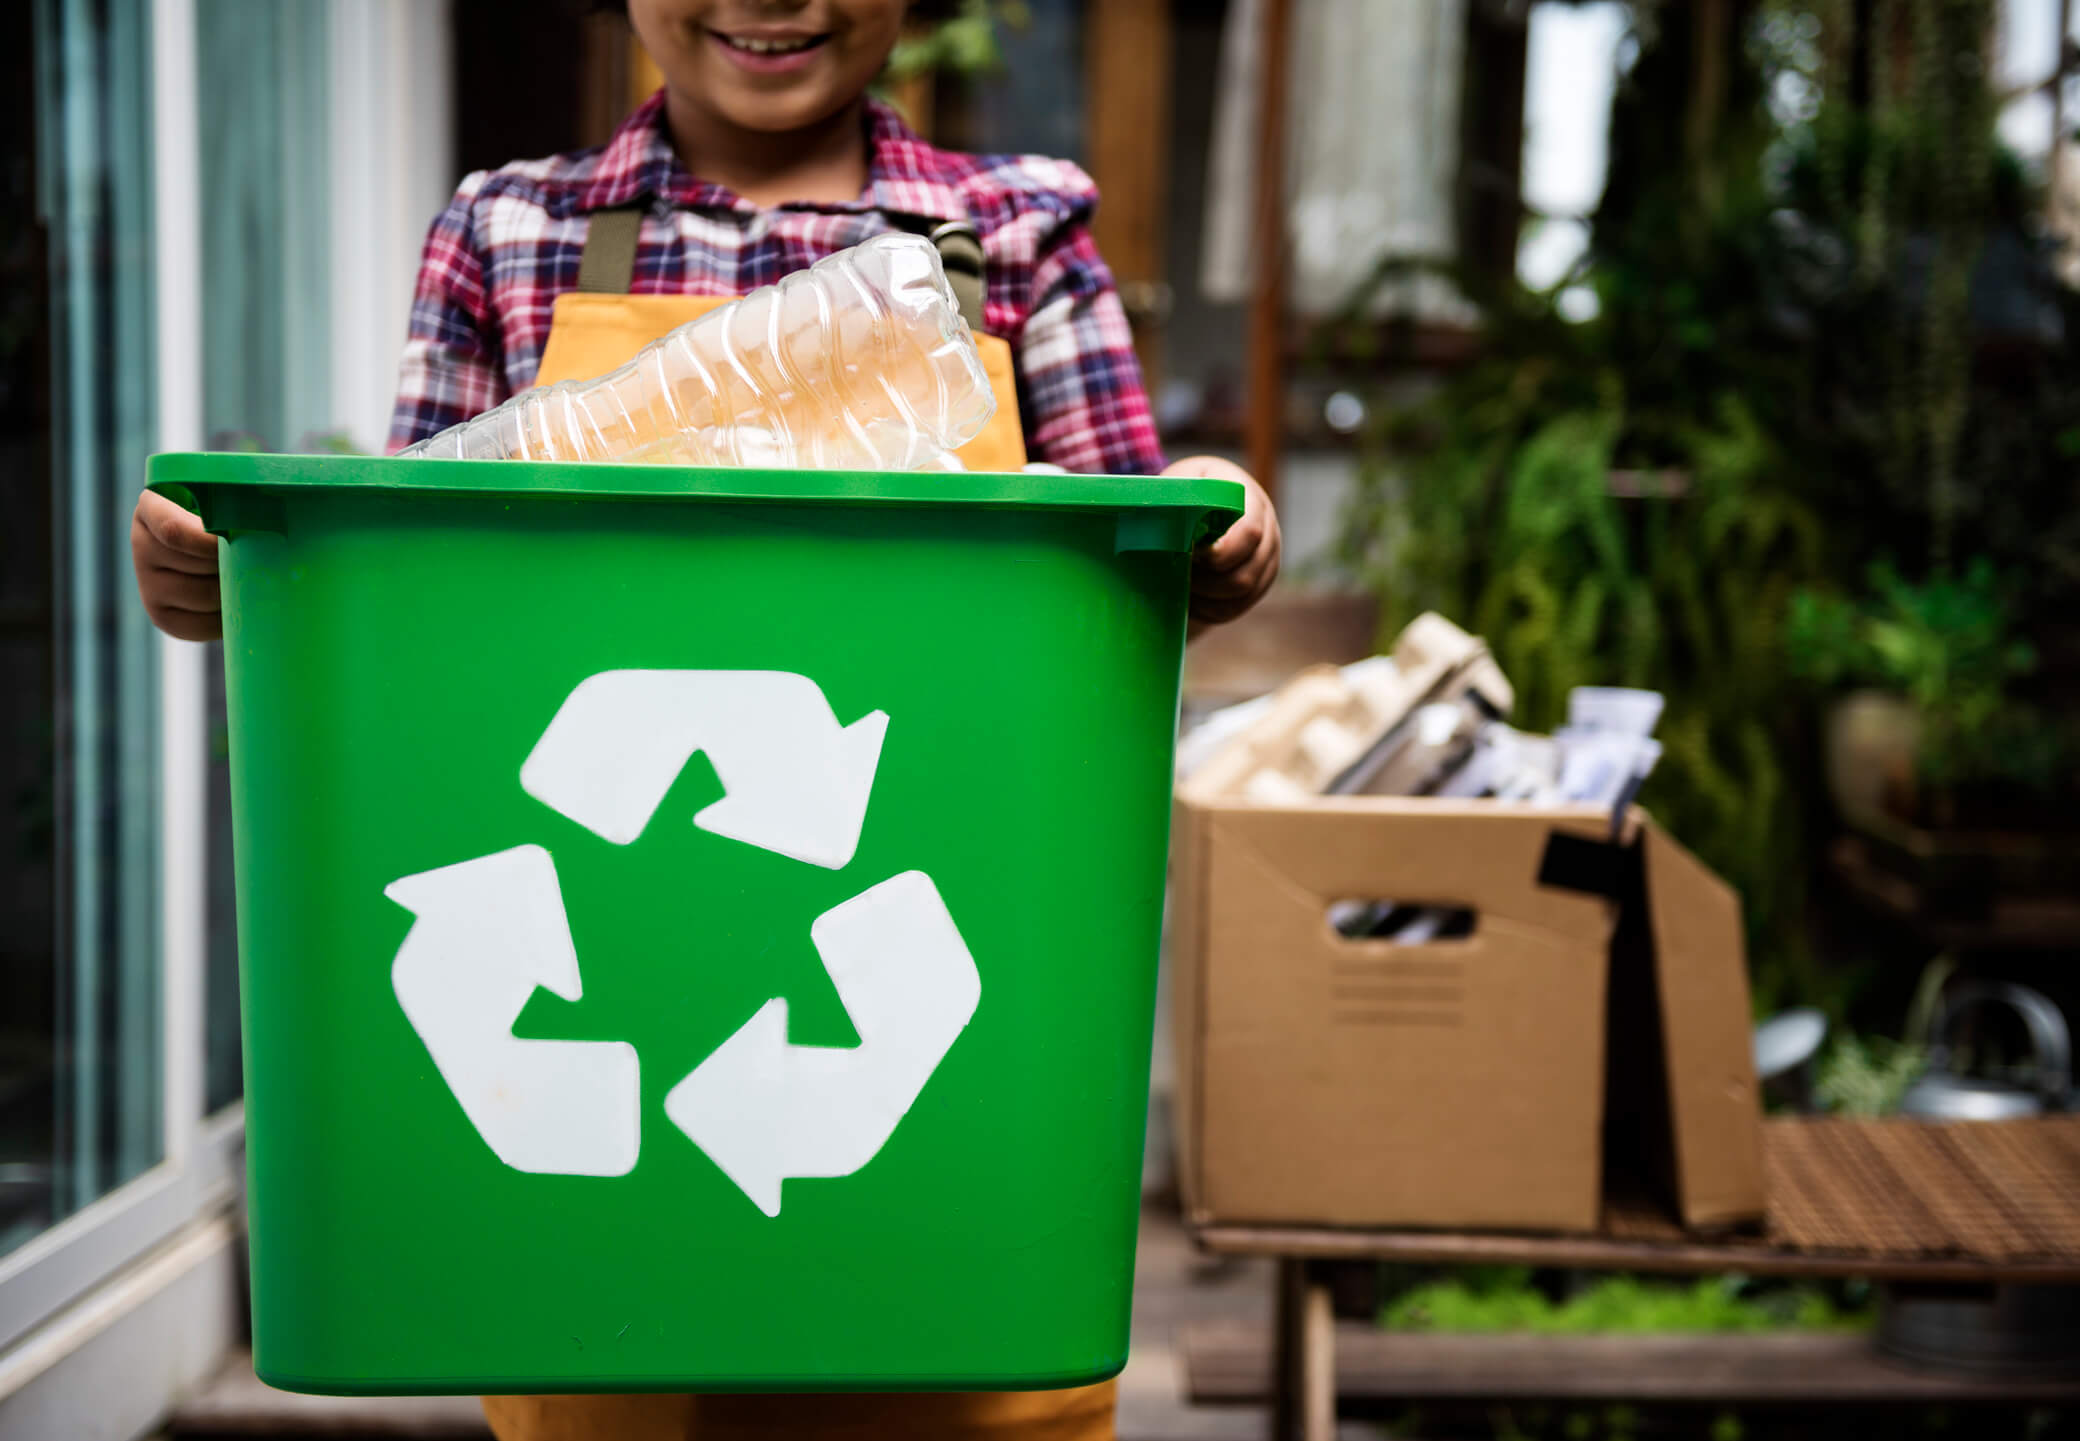 Child Holding Recycling Box of Plastic Bottles